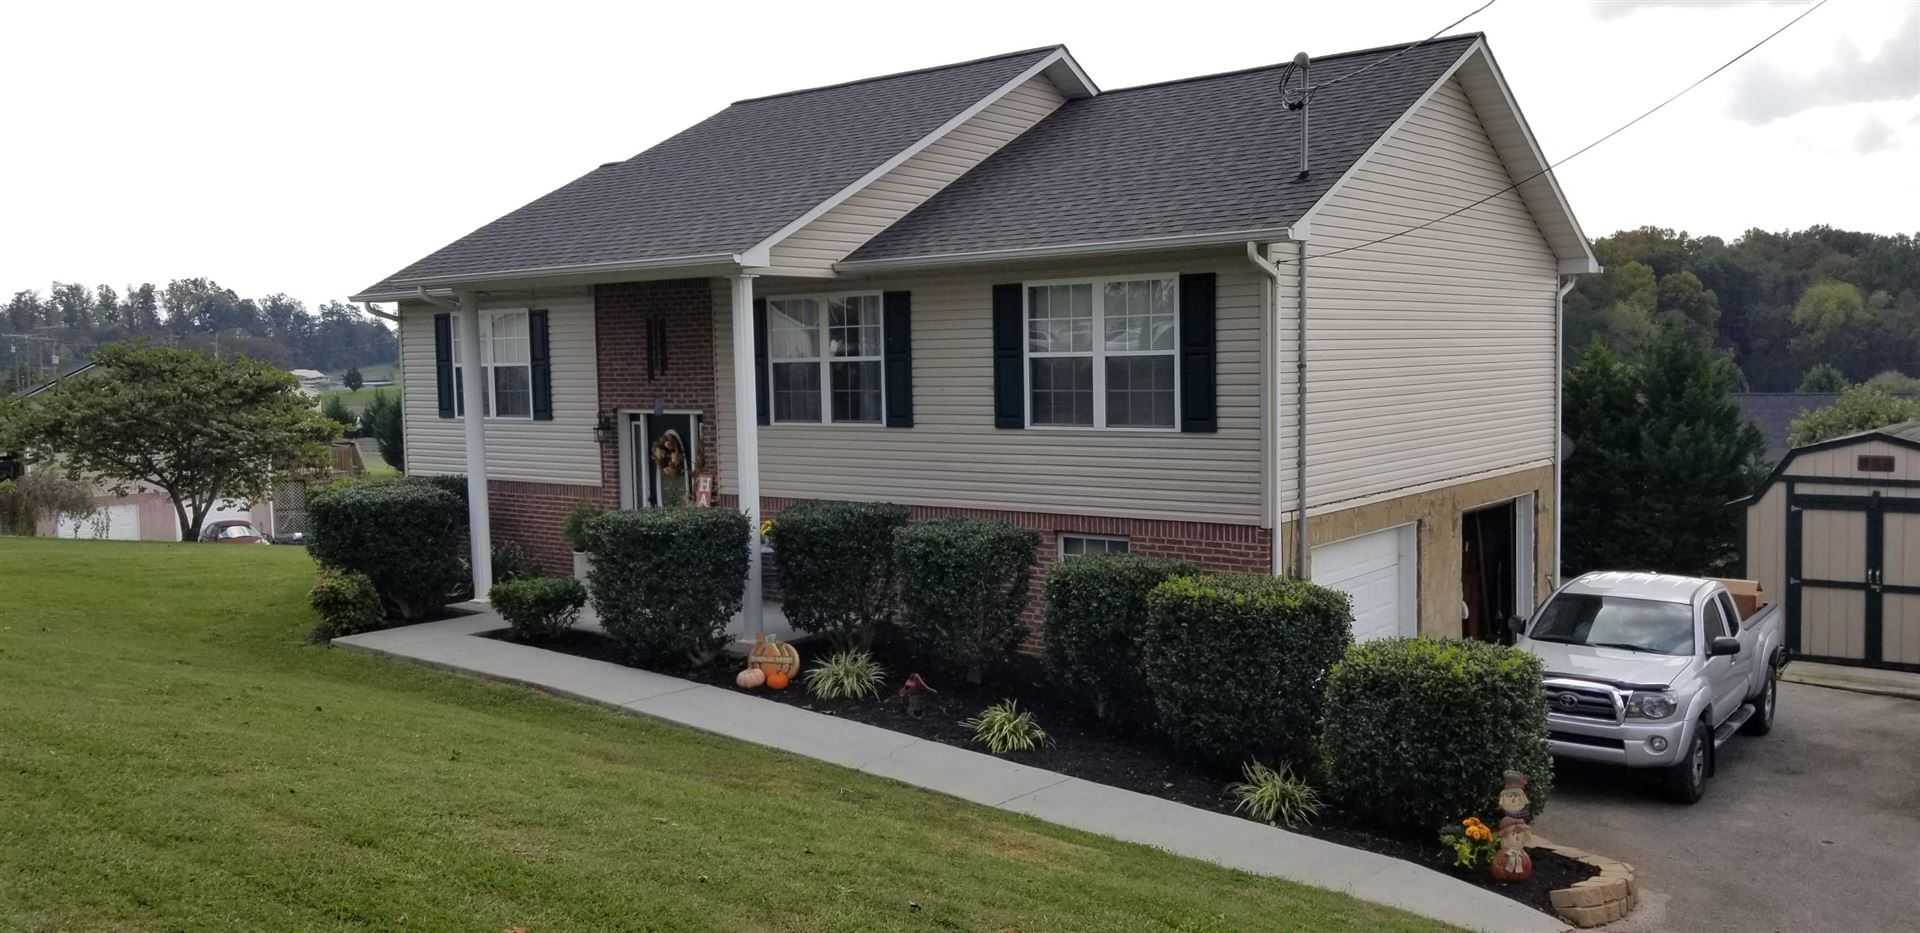 Photo of 1783 Sand Plant Rd, Sevierville, TN 37876 (MLS # 1133036)